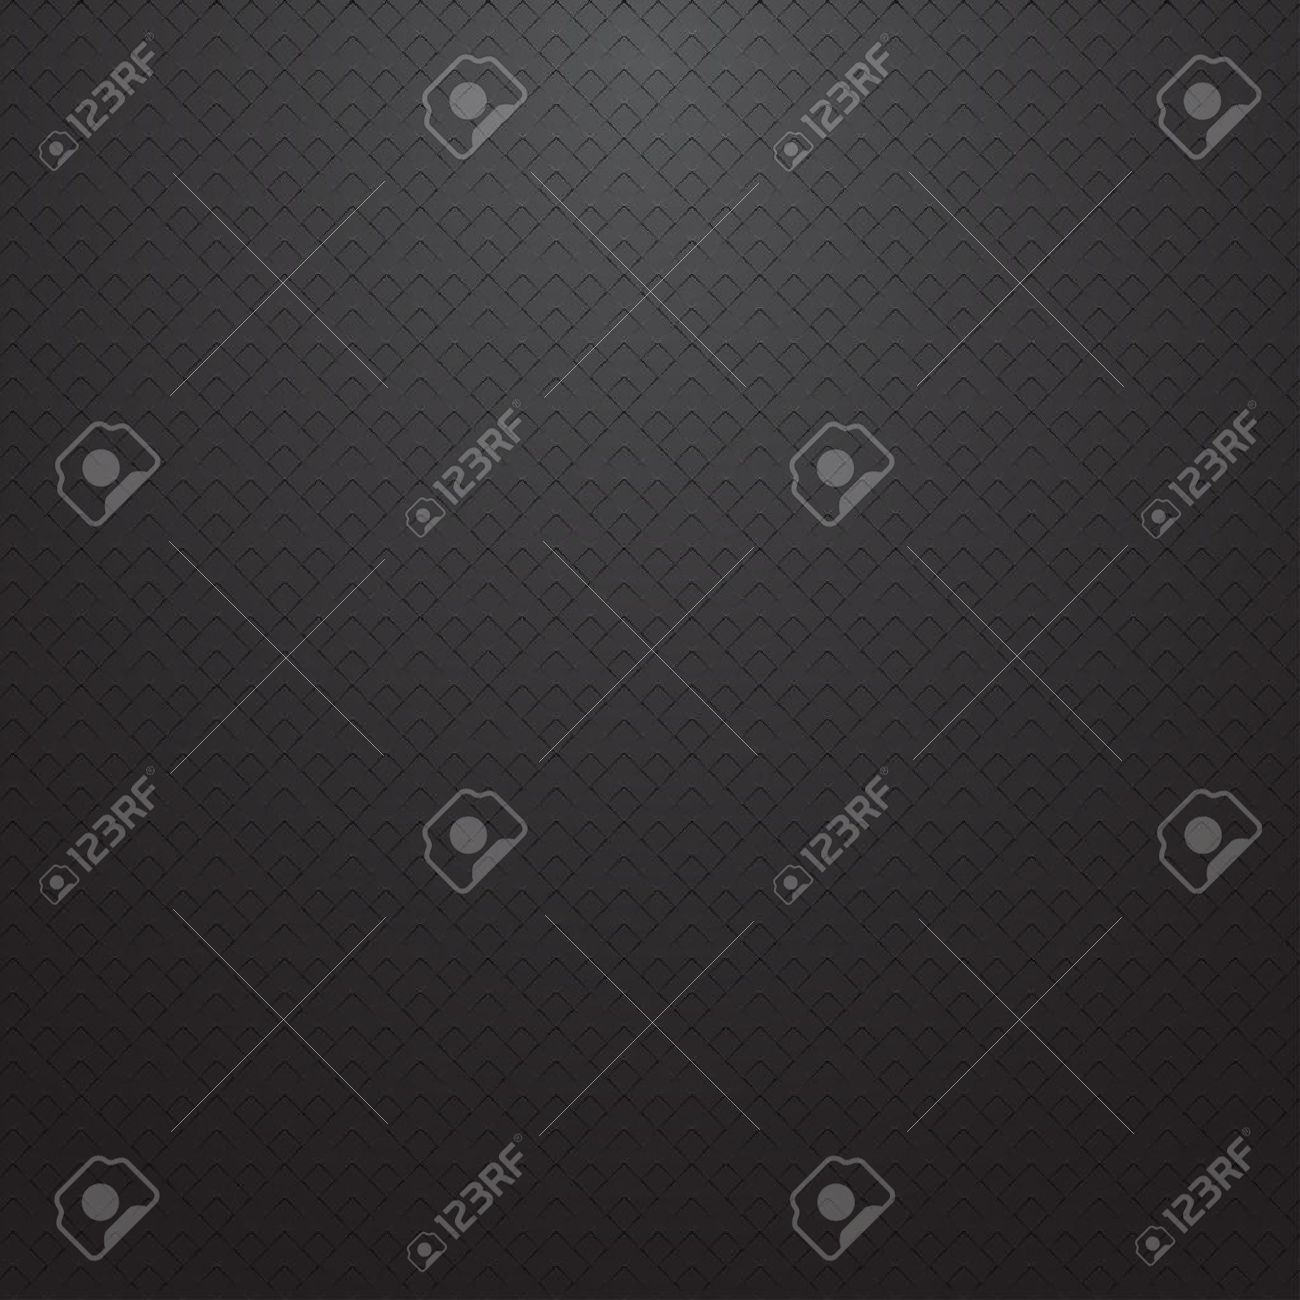 Dark grid texture. Abstract vector background - similar to carbon. - 55433862